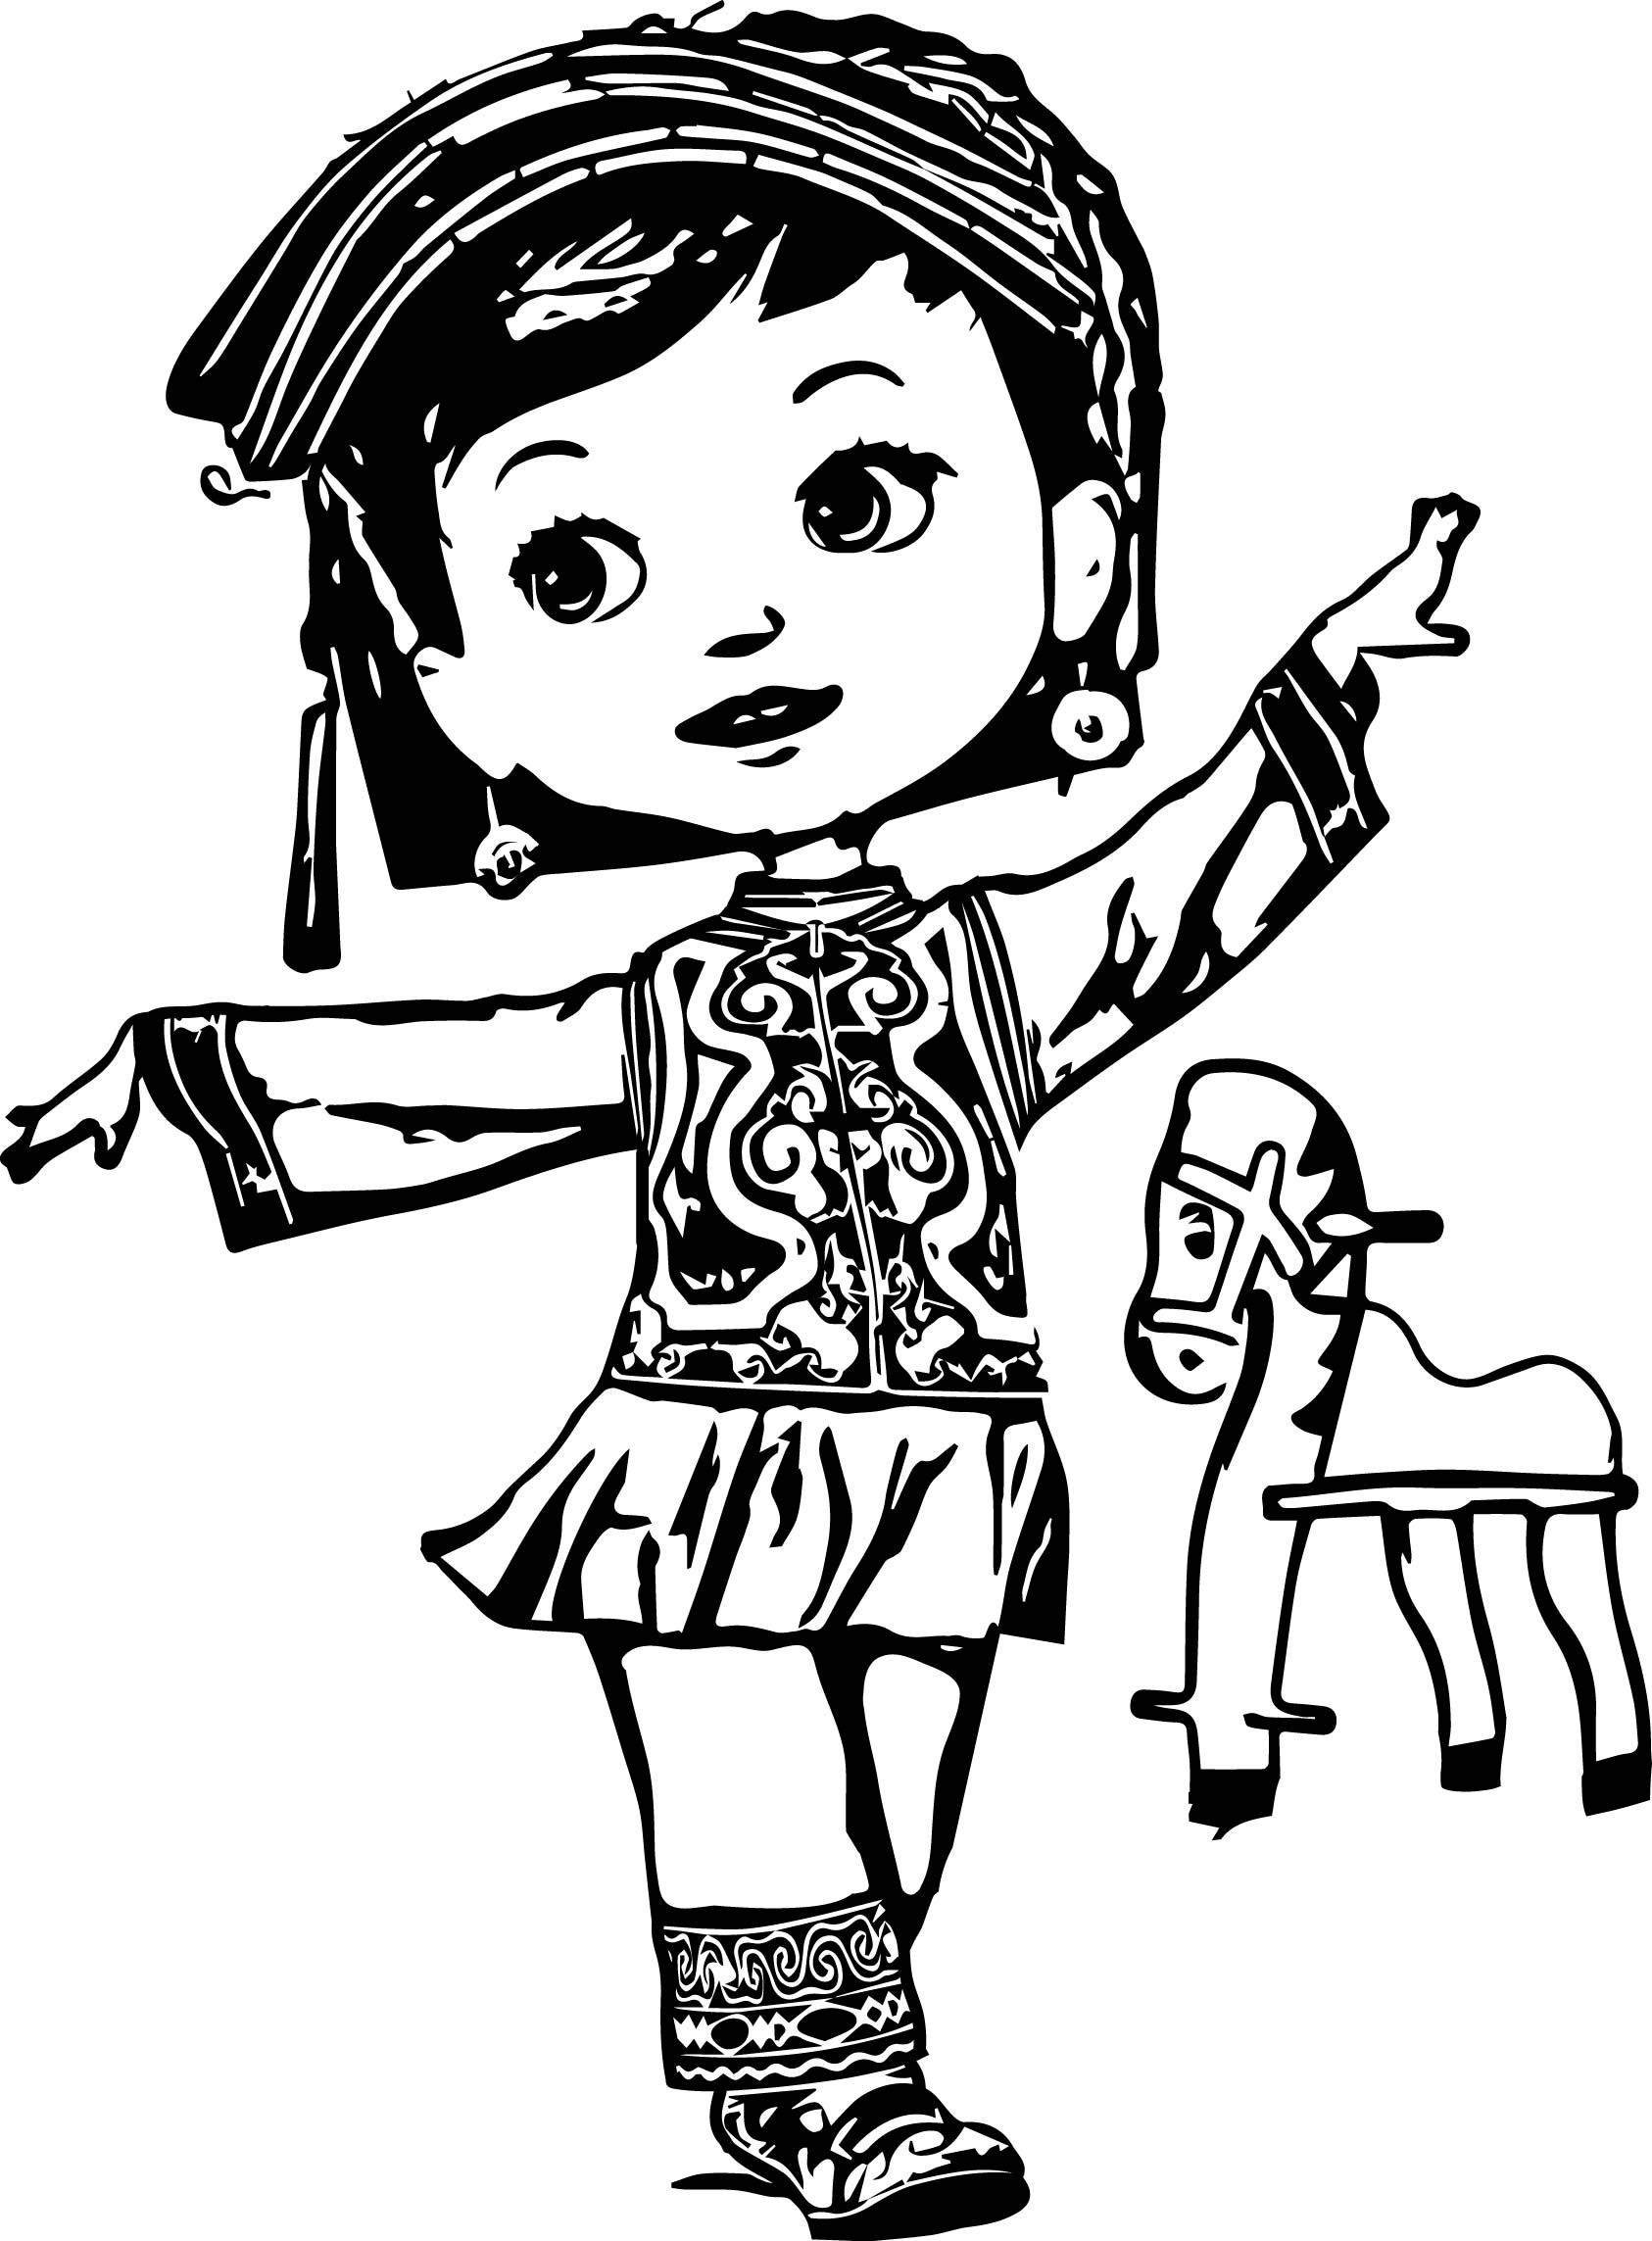 Elegant Dancing Cartoon Dancing Child Girl Picture Image Digital Art Coloring Page